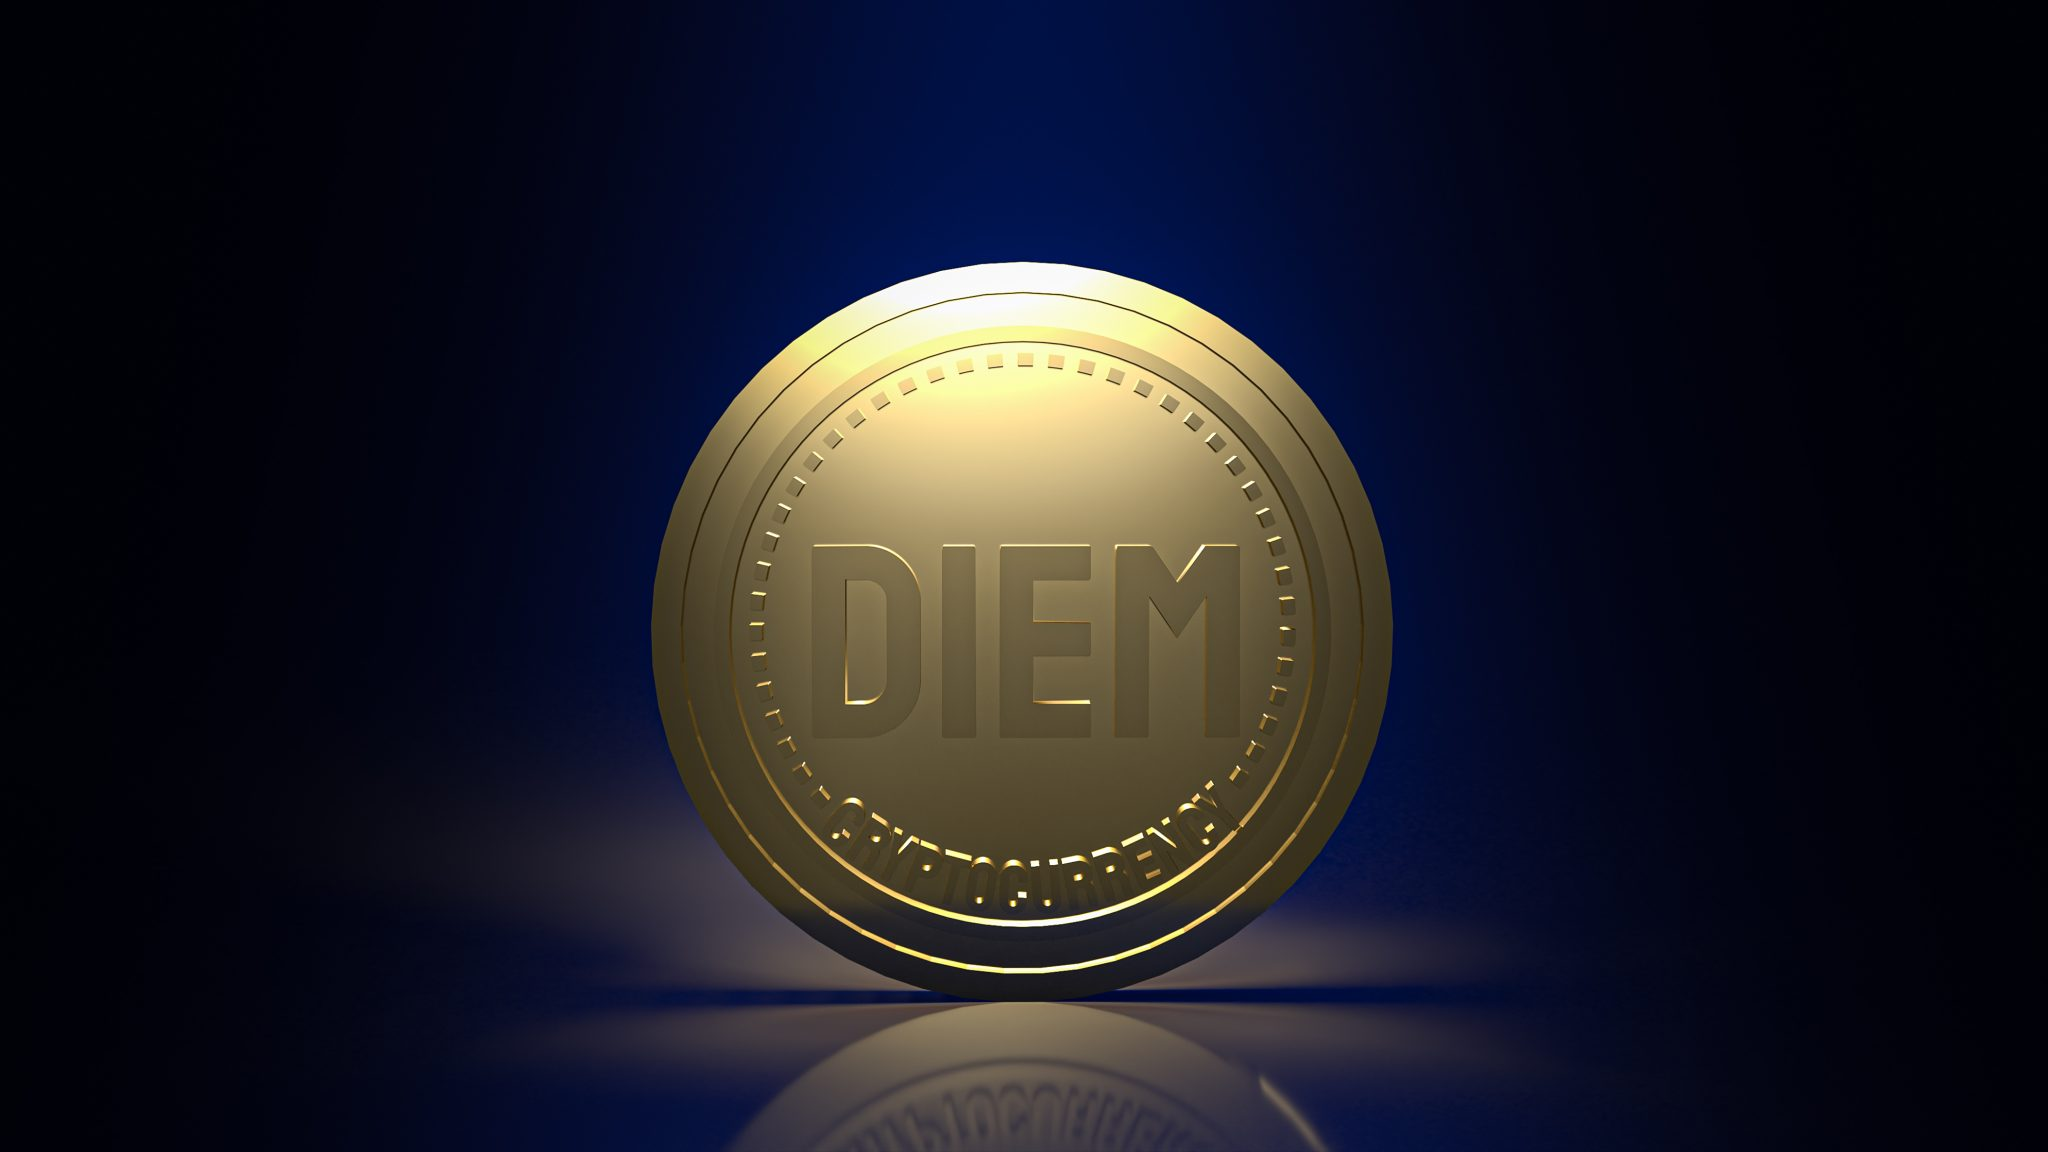 Bangkok /Thailand /3 December 2020  Diem coins  cryptocurrency from  Facebook content 3d rendering